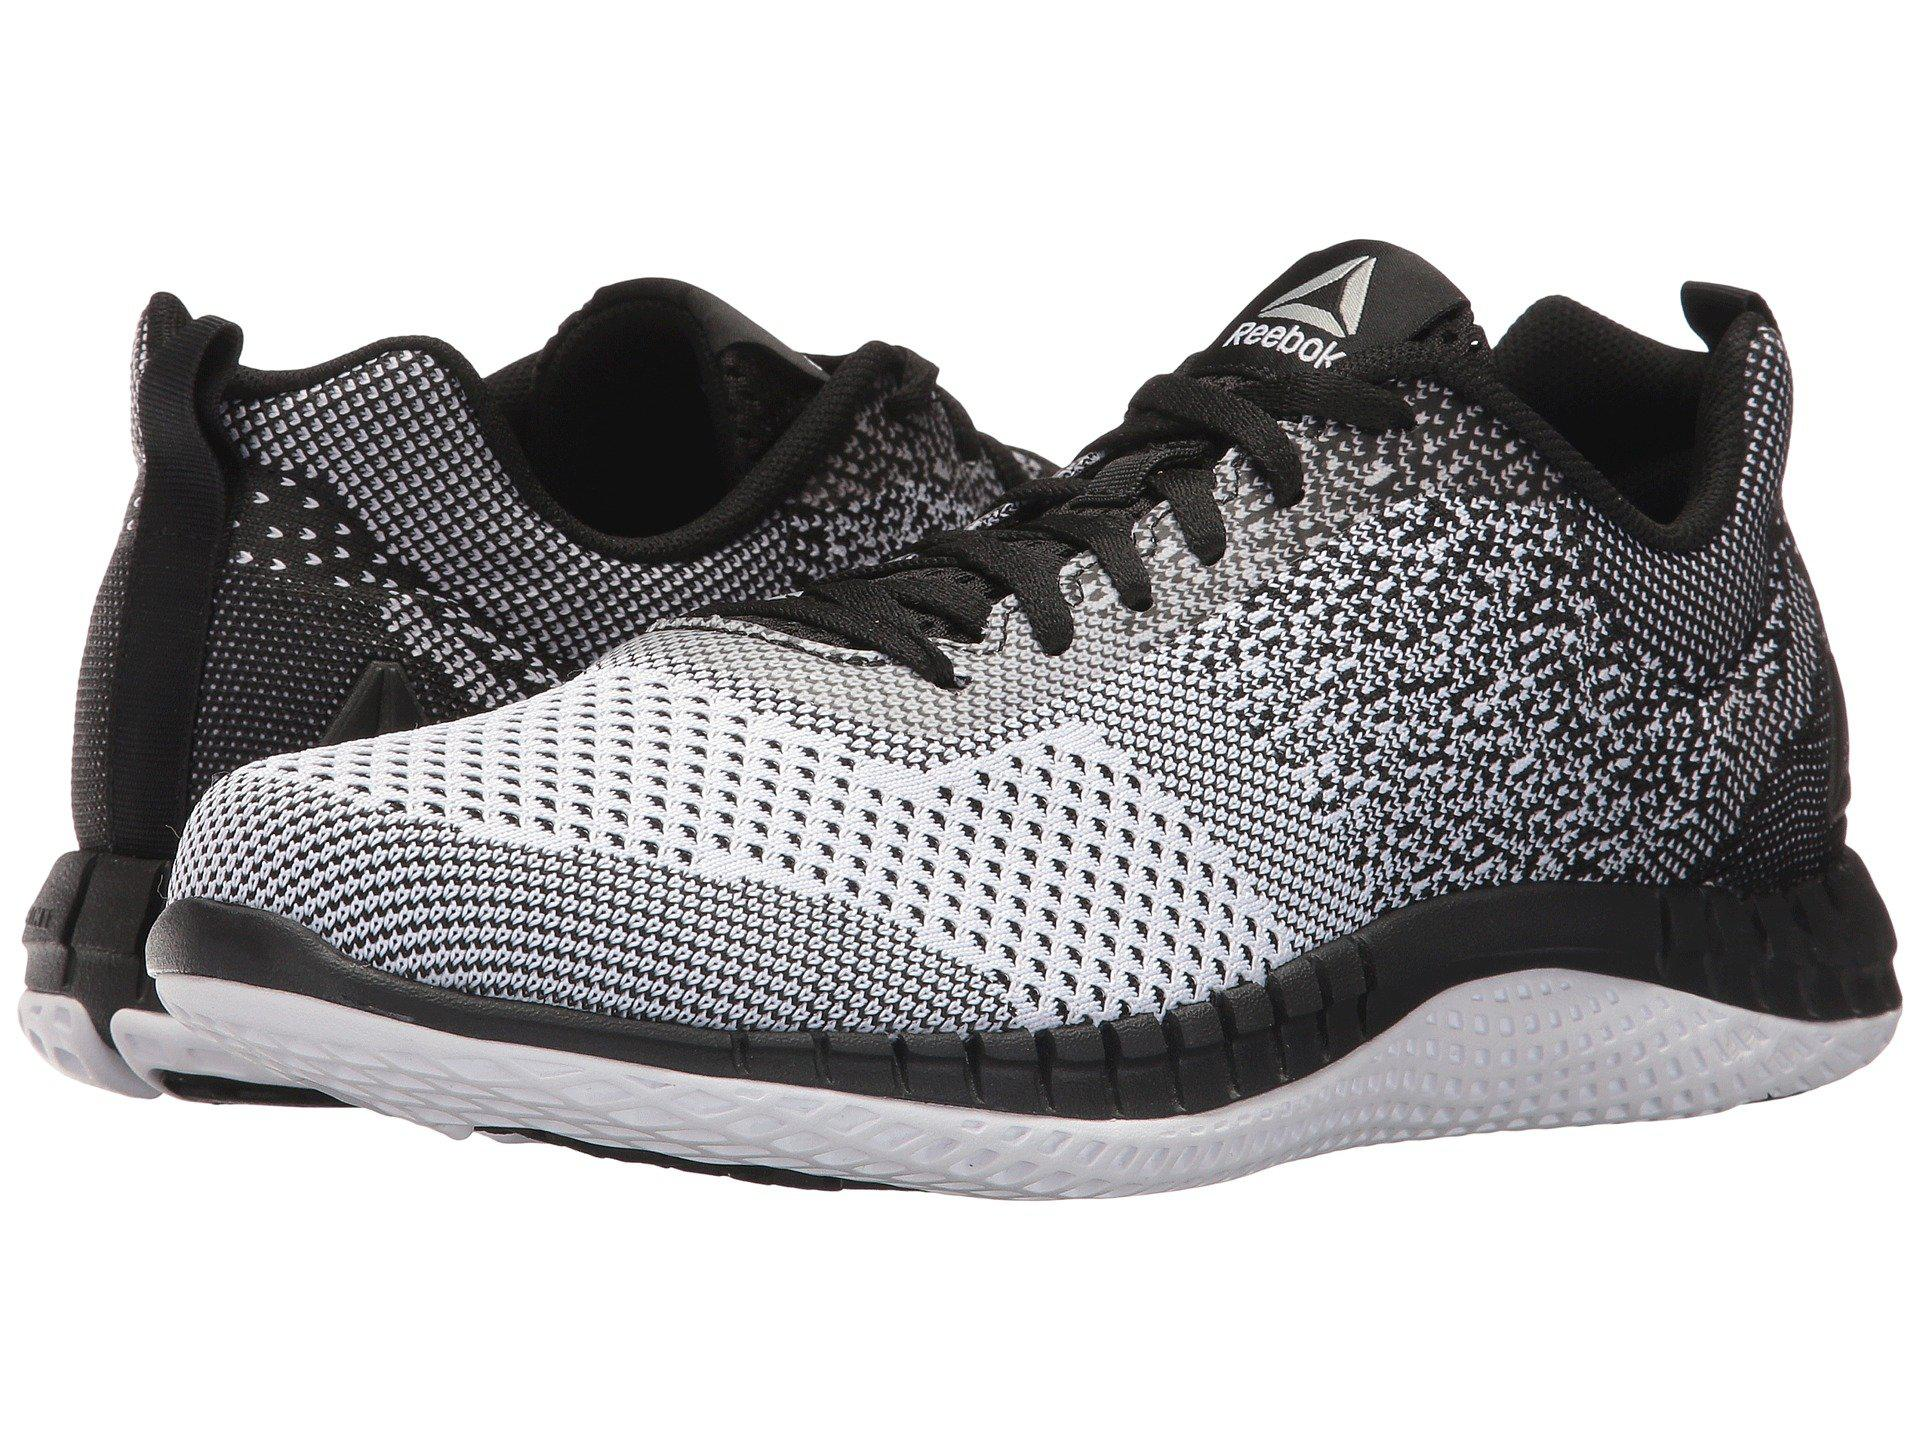 178f5642349efa Lyst - Reebok Print Run Prime Ultk in Black for Men